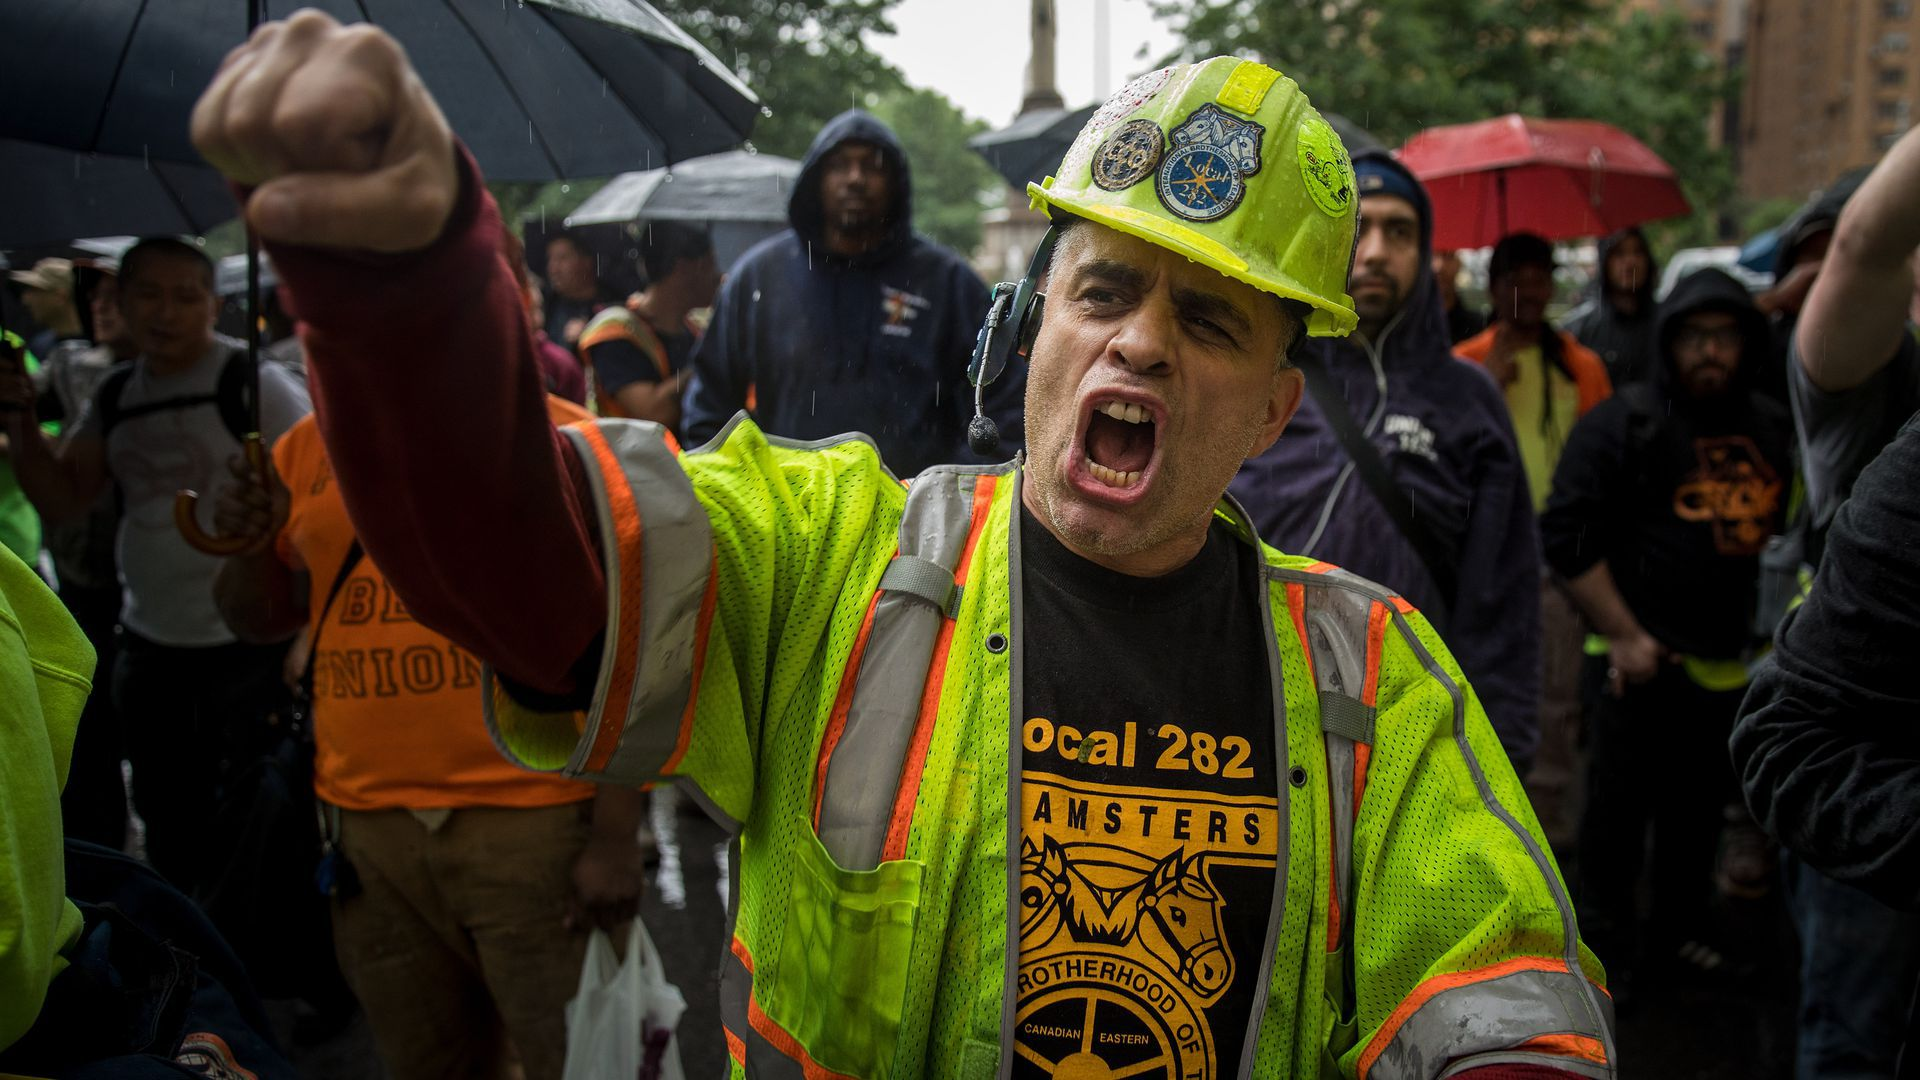 A construction worker protests with his fist in the air